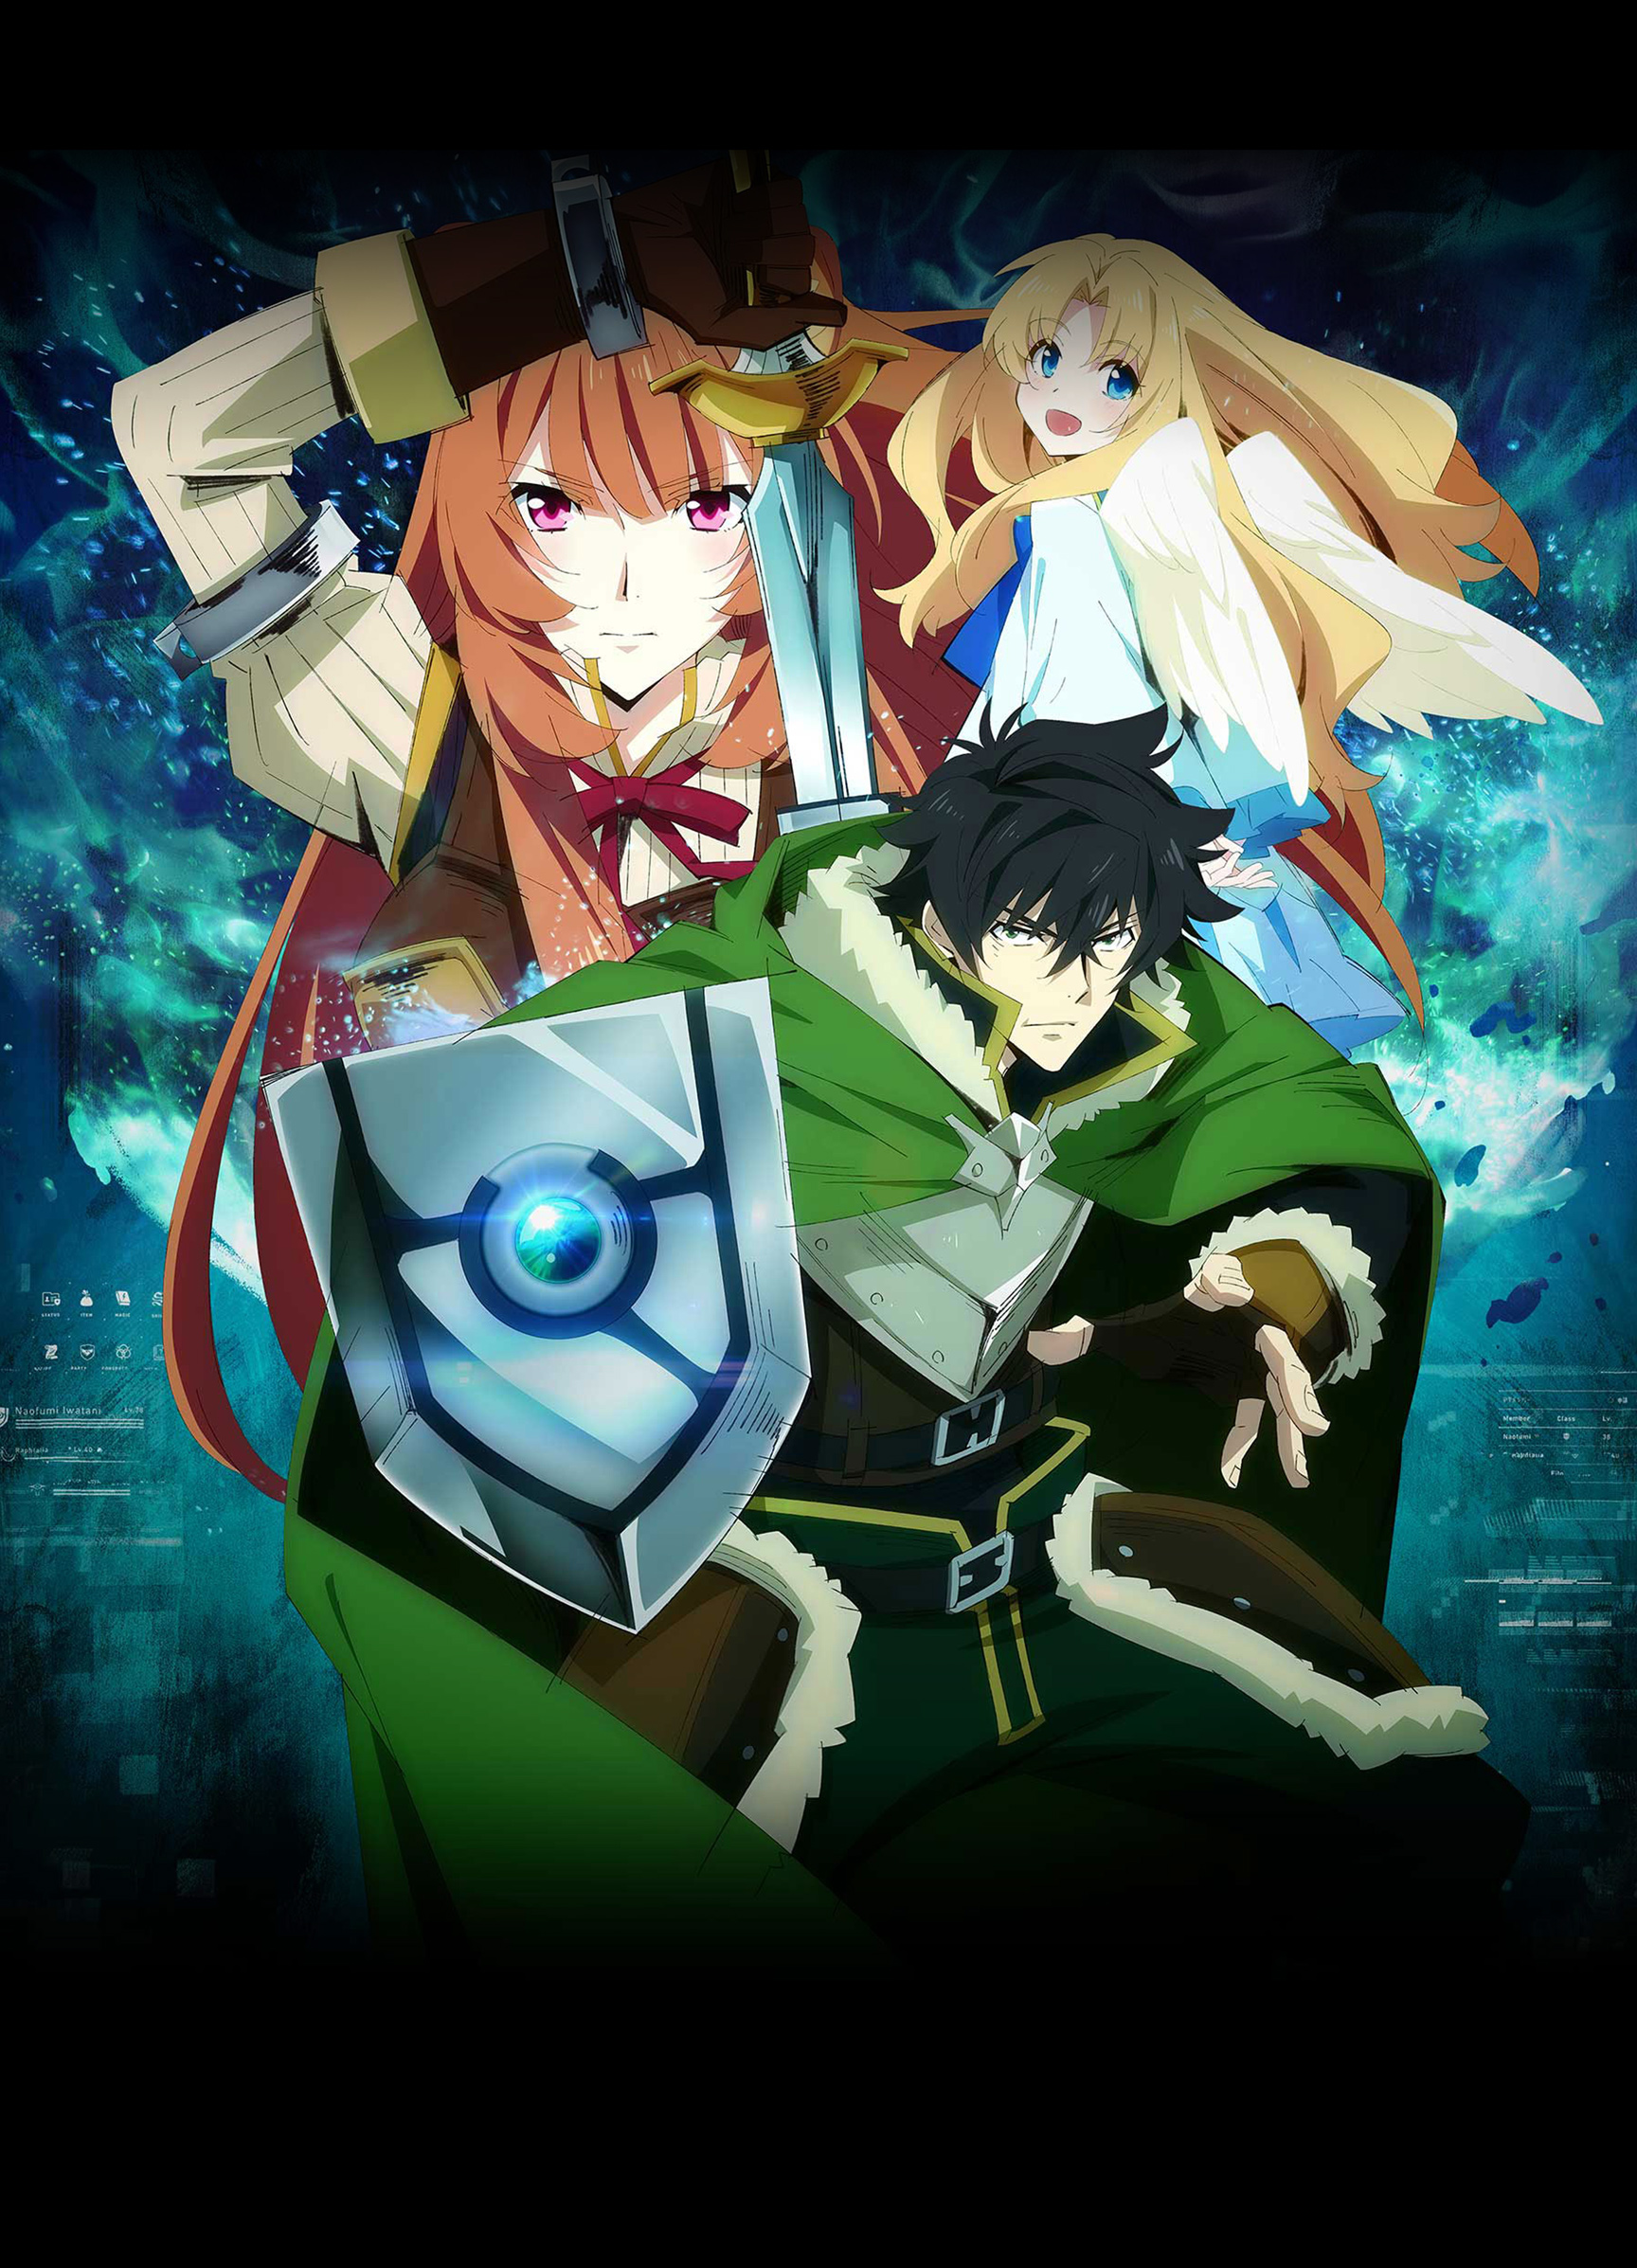 The Rising Of The Shield Hero 2 Vostfr : rising, shield, vostfr, Watch, Rising, Shield, Action/Adventure,, Fantasy, Anime, Funimation